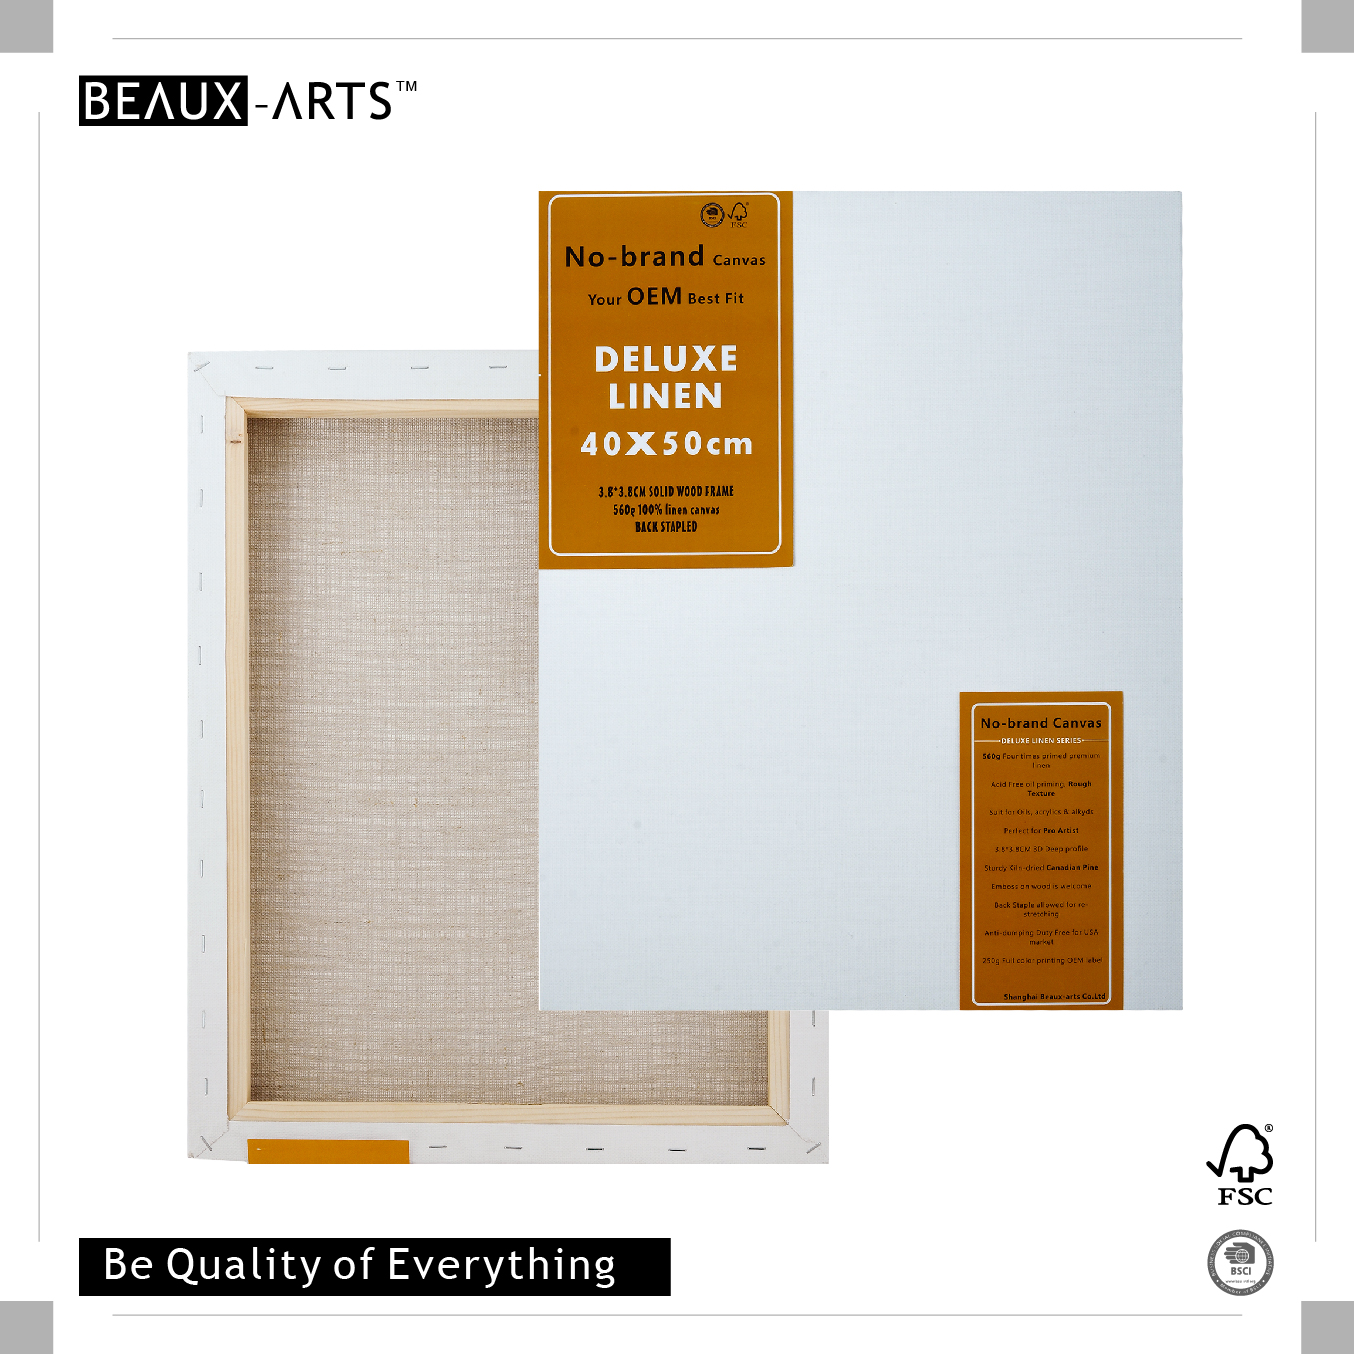 560g Deluxe Linen Stretched Modern Art Canvases 3.8*3.8CM Canadian Pine Wood Perfect for Pro Artist